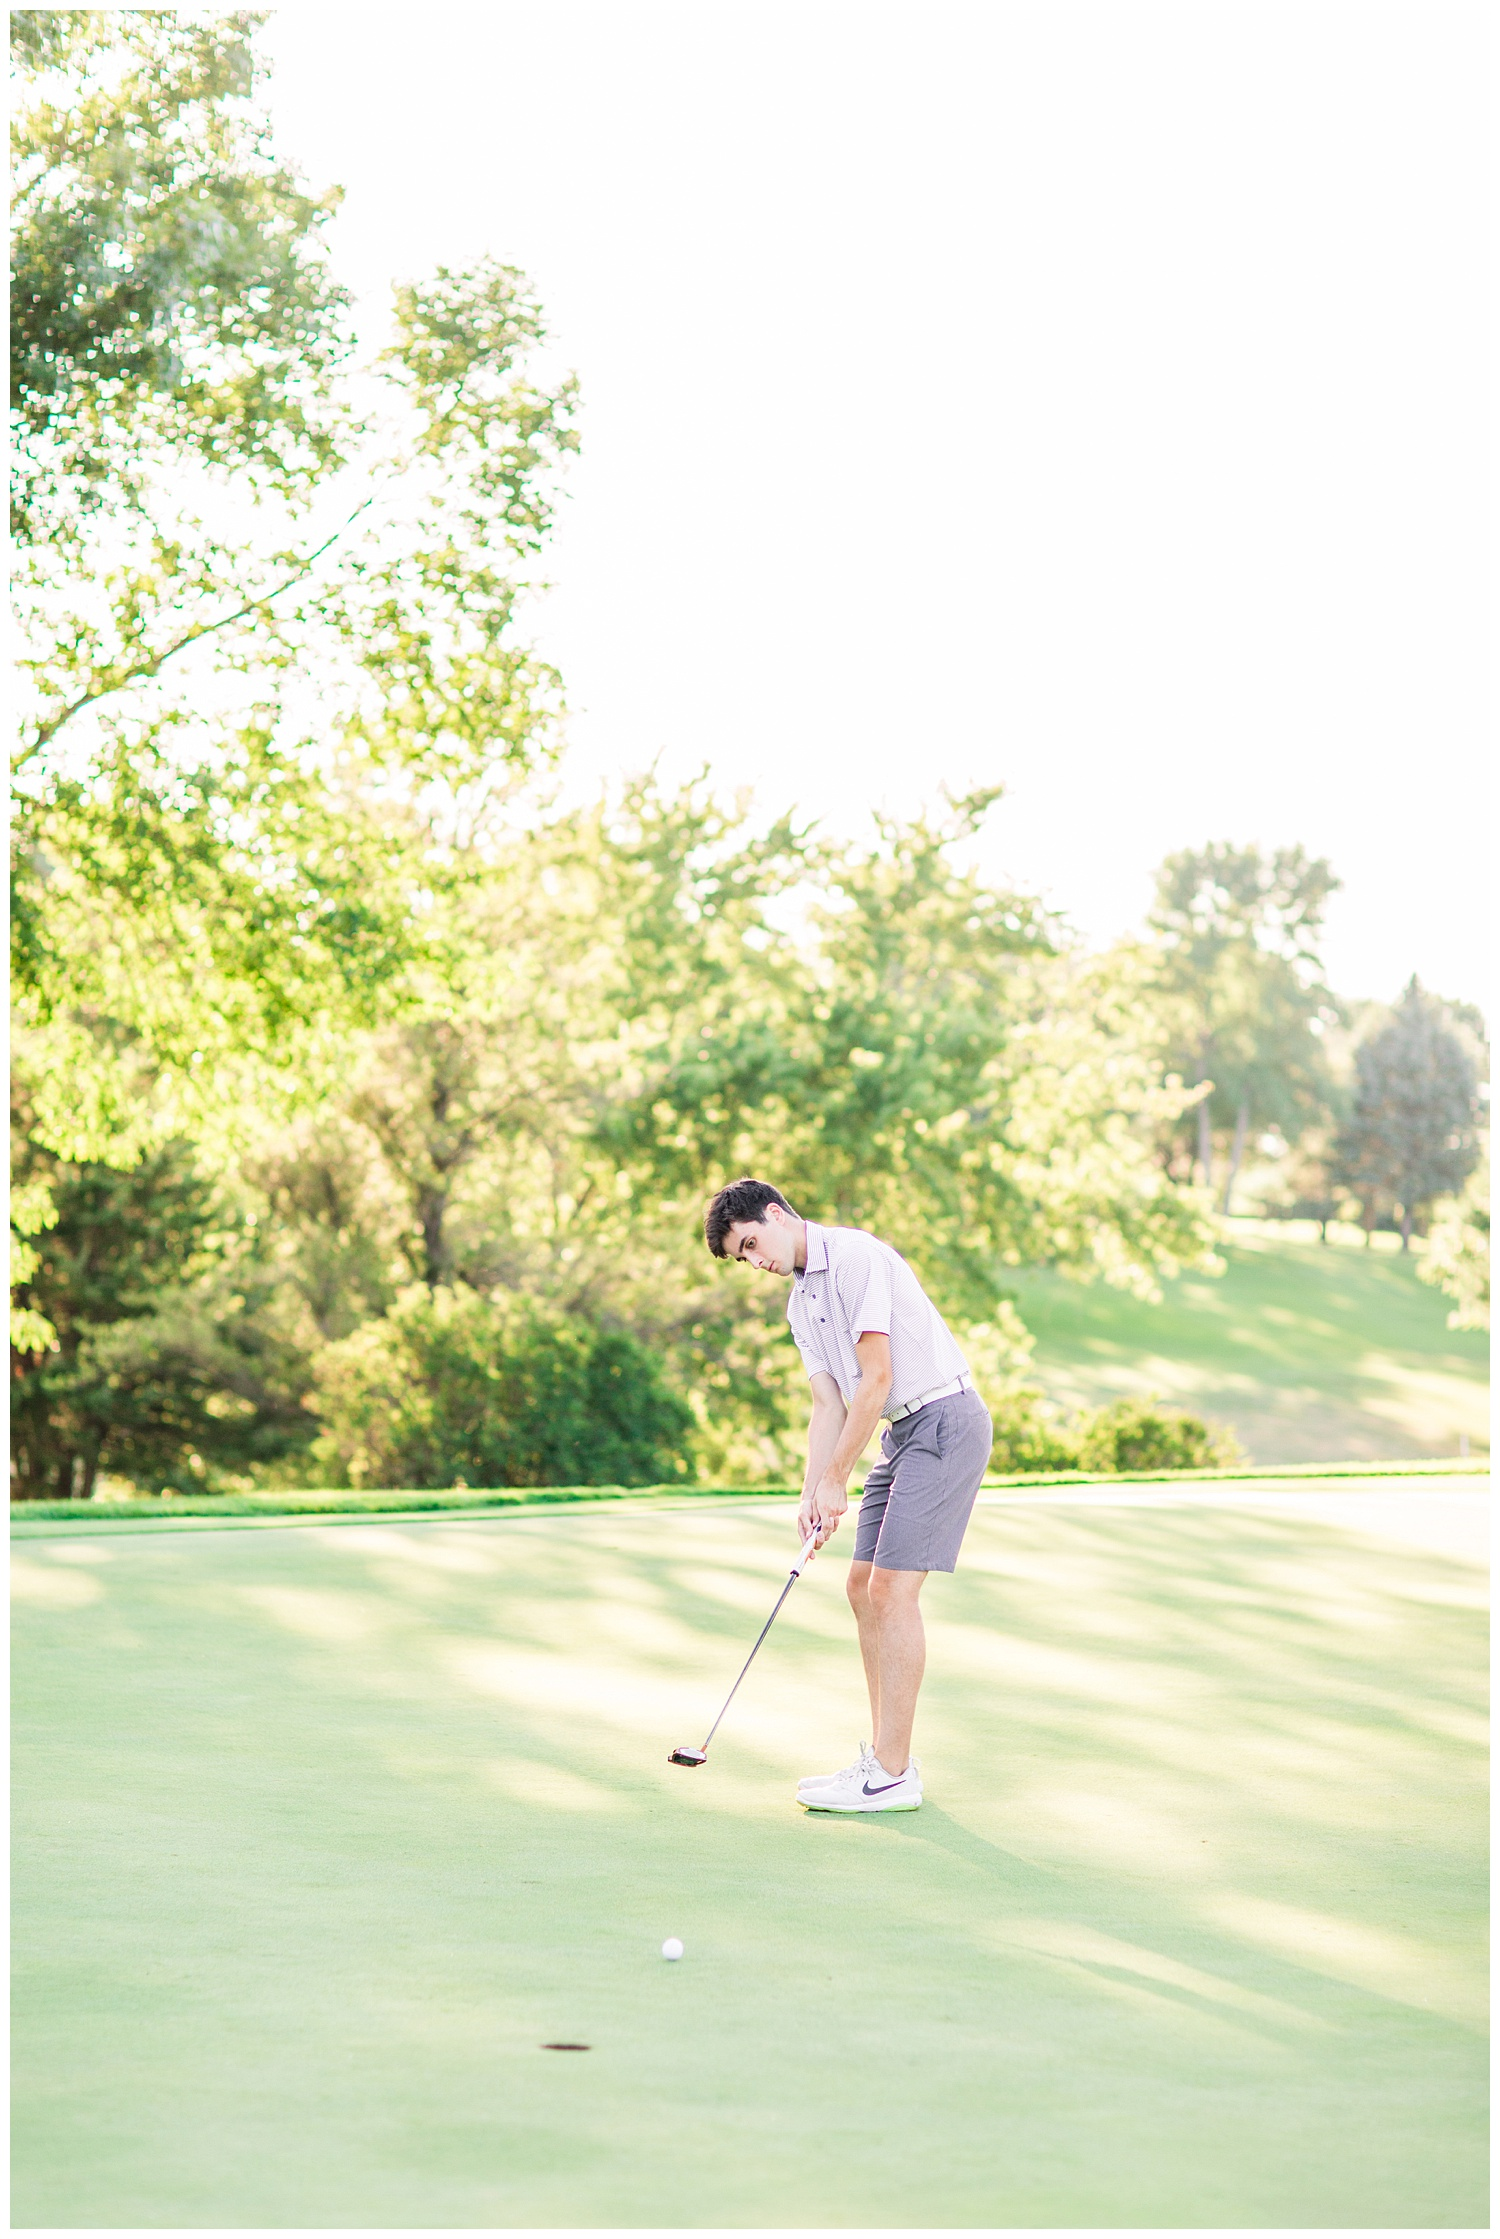 High school senior boy putting a golf ball at Spring Vally Golf Course in Livermore, Iowa | CB Studio